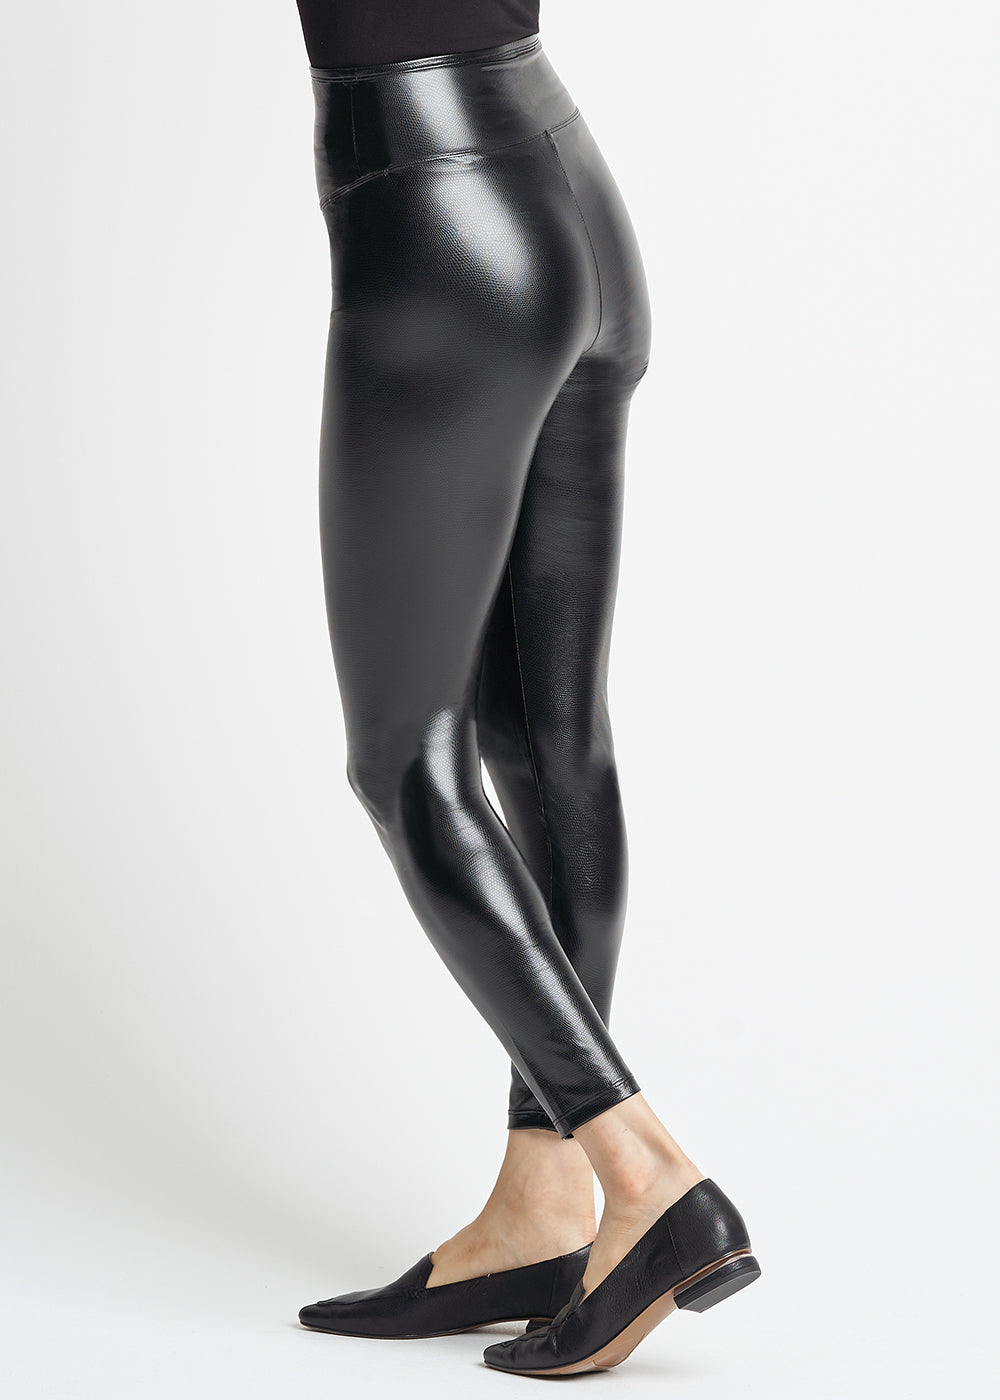 Yummie Pebbled Shine Faux Leather Shaping Legging